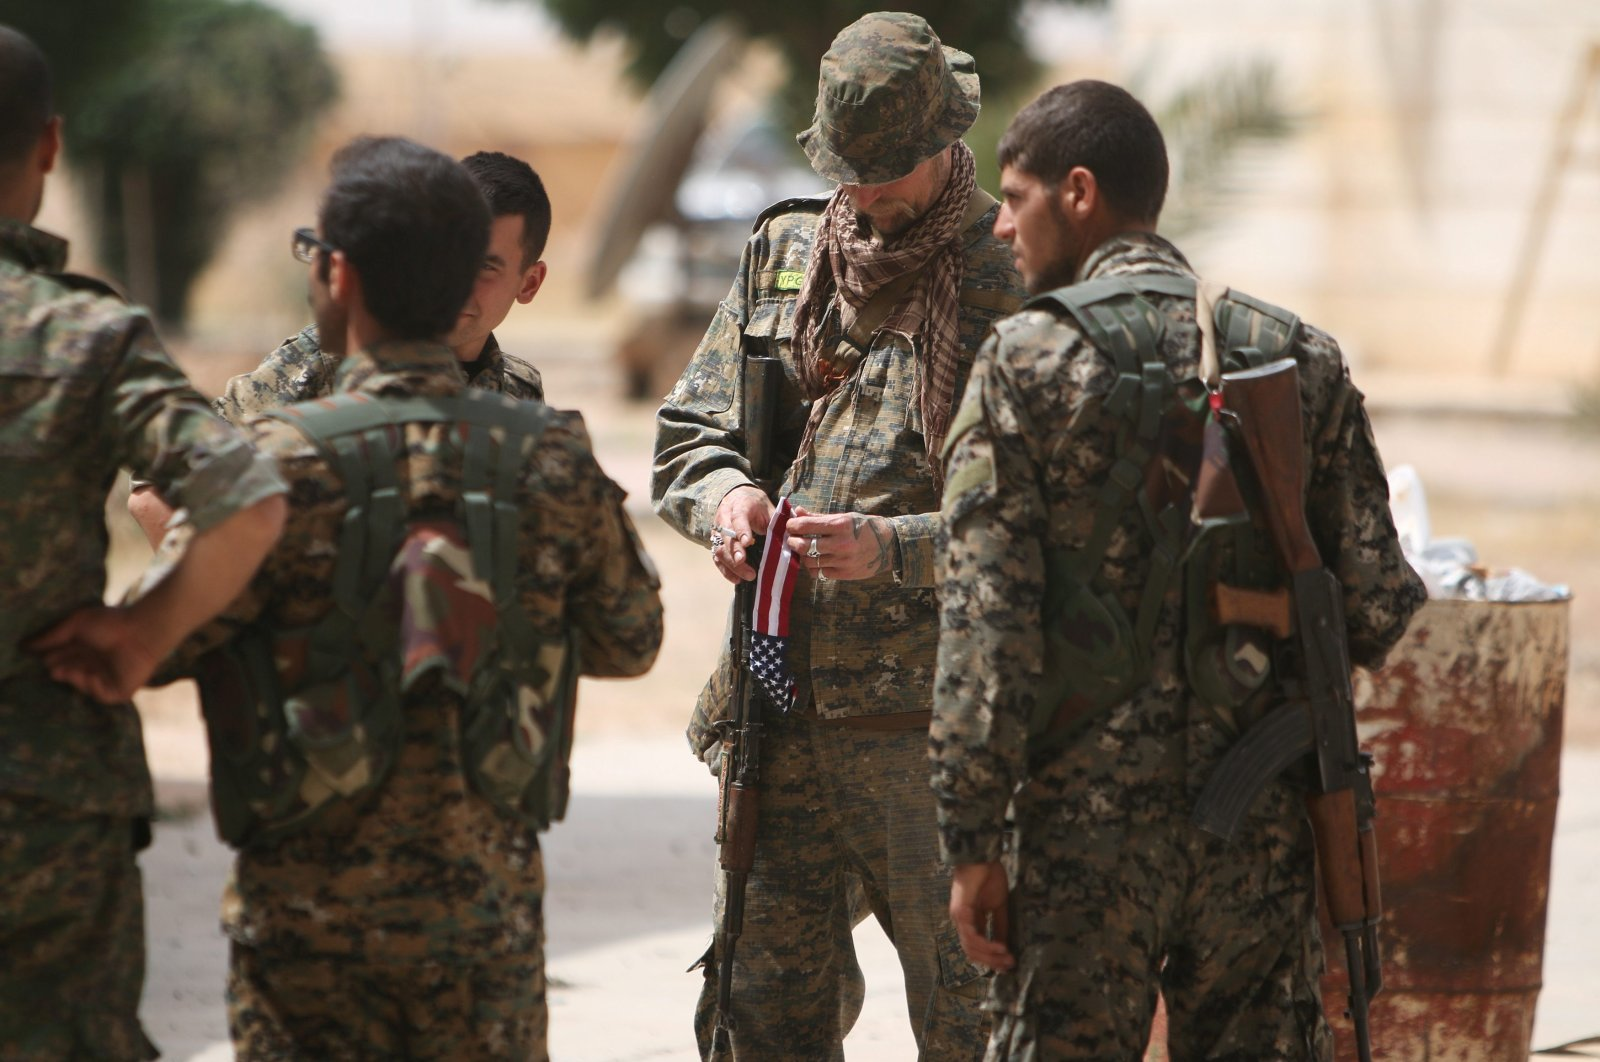 A U.S. fighter, who is fighting alongside YPG terrorists, carries his national flag as he stands with YPG members in the northern province of Raqqa, Syria, May 27, 2016. (REUTERS Photo)